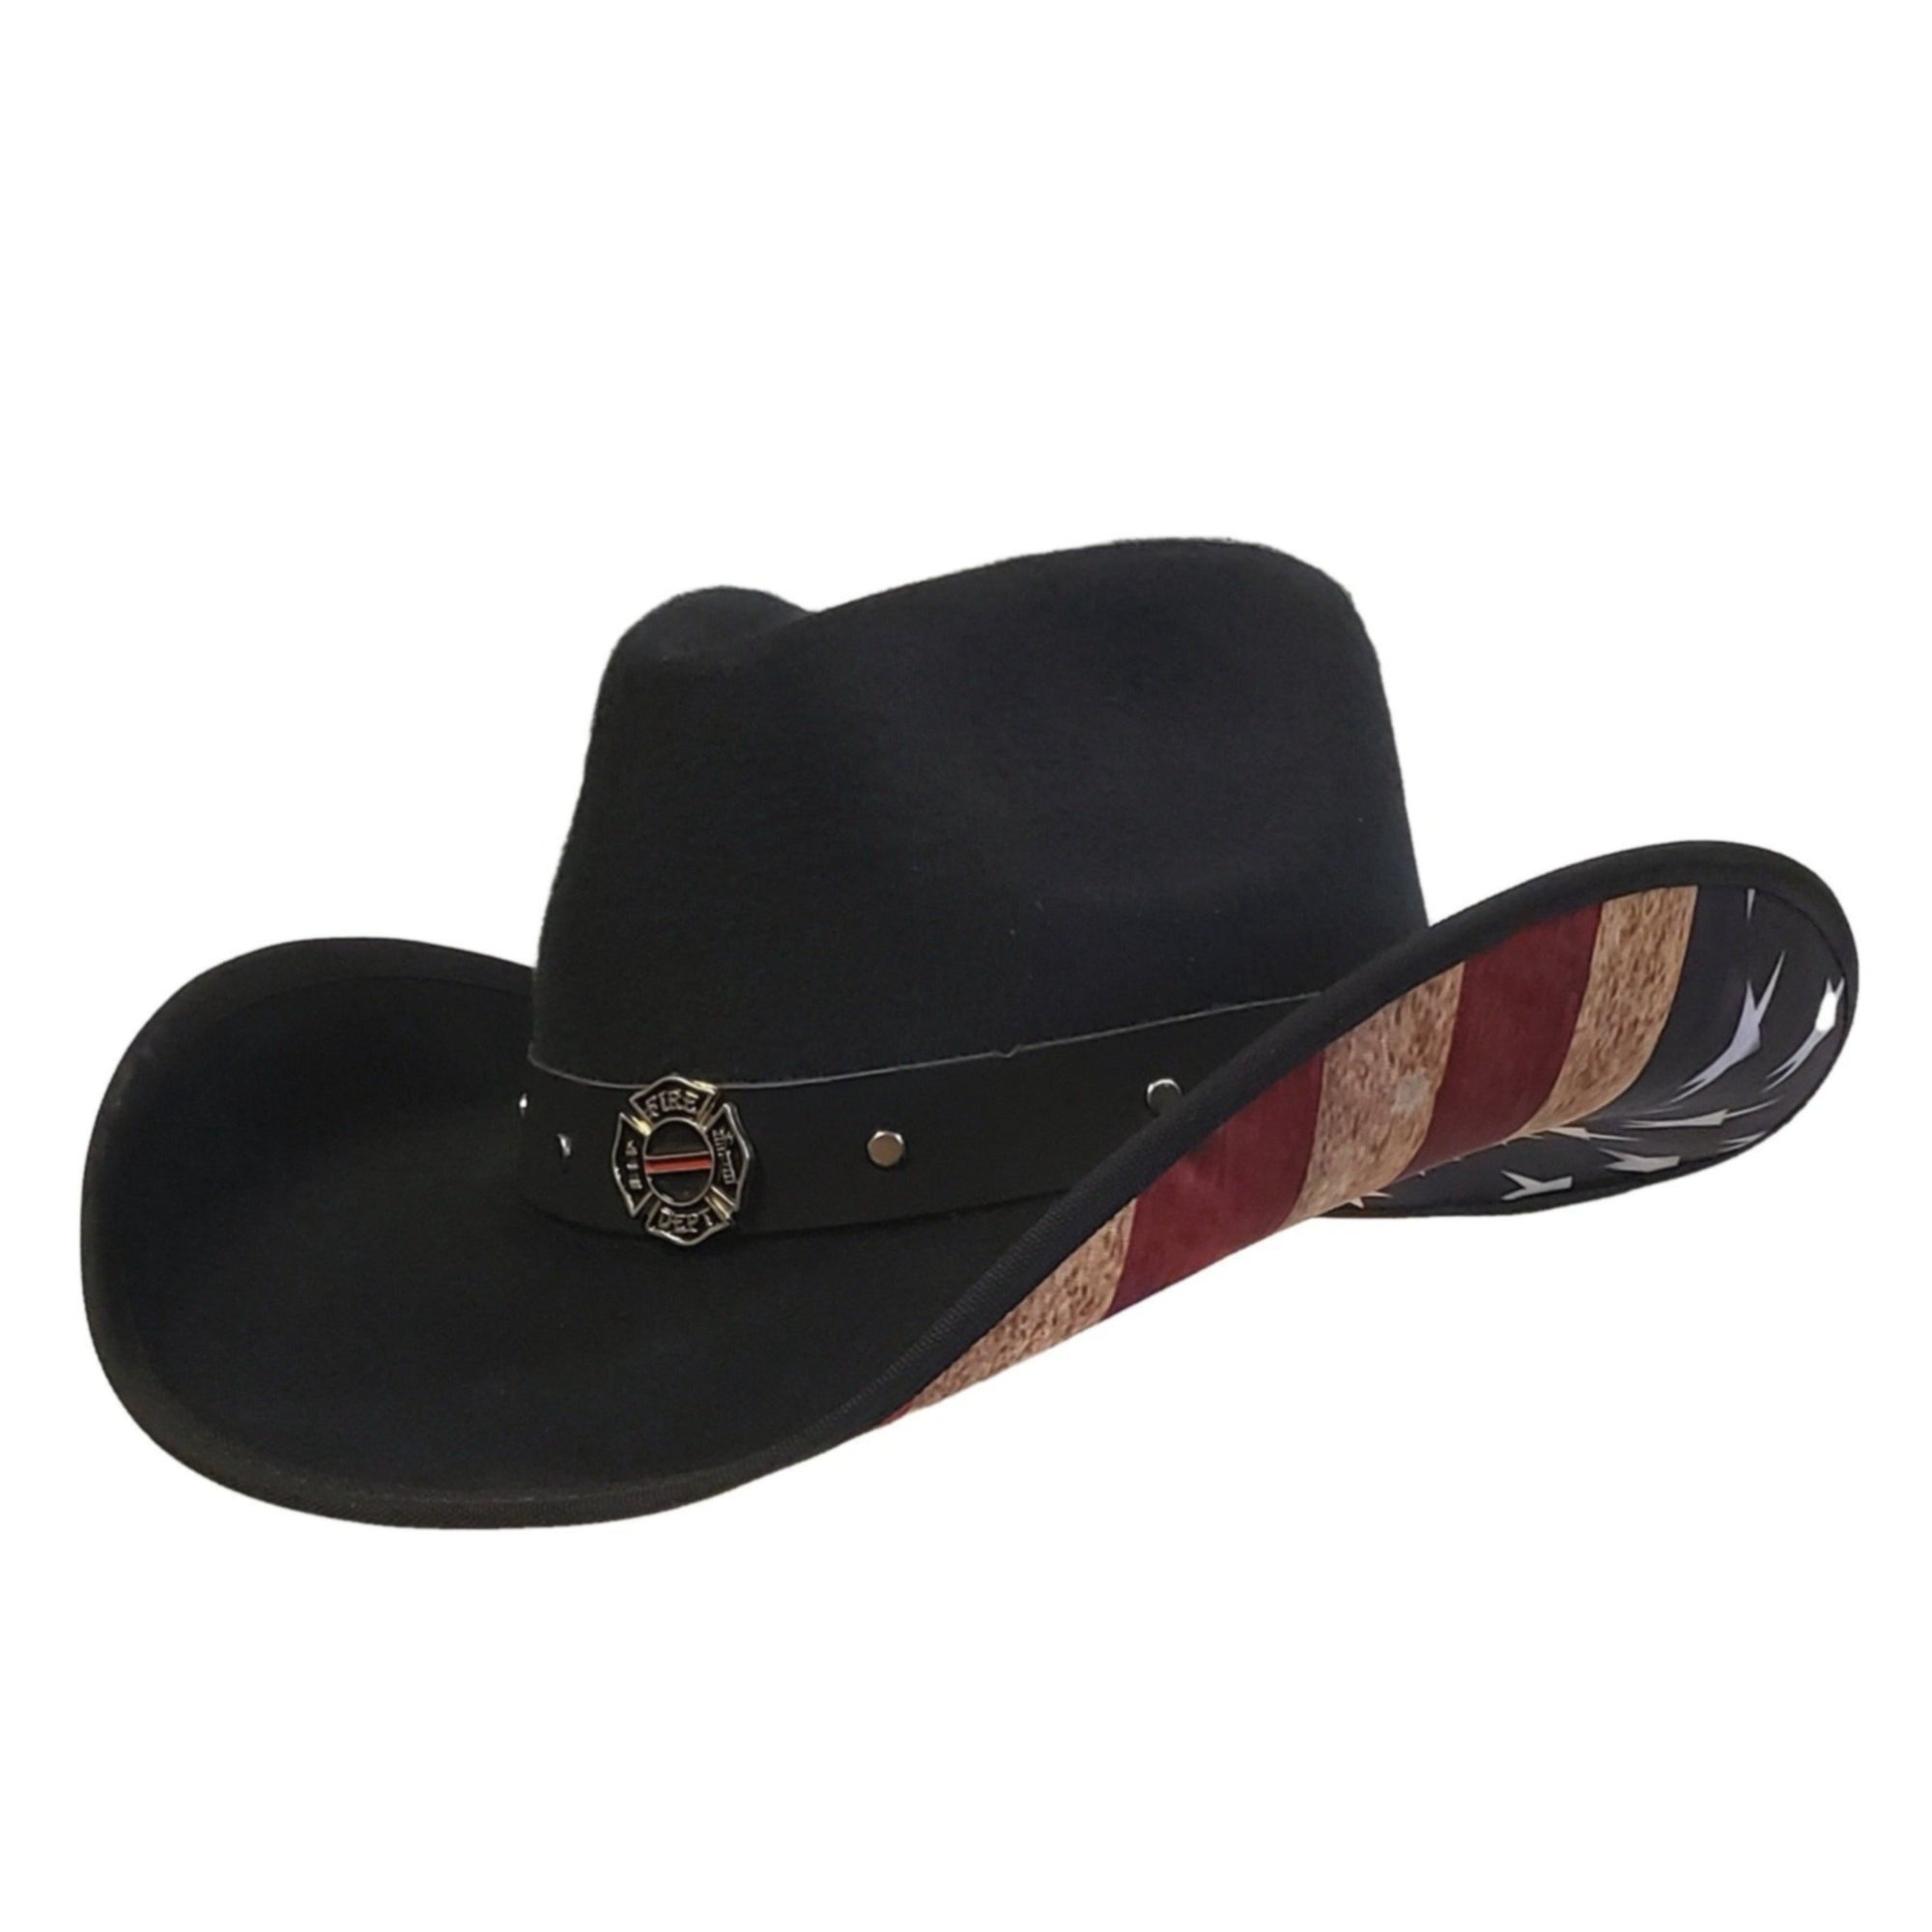 Black faux felt Gone Country Hats cowboy hat with American Flag fabric under the brim and a Firefighter emblem on the hatband